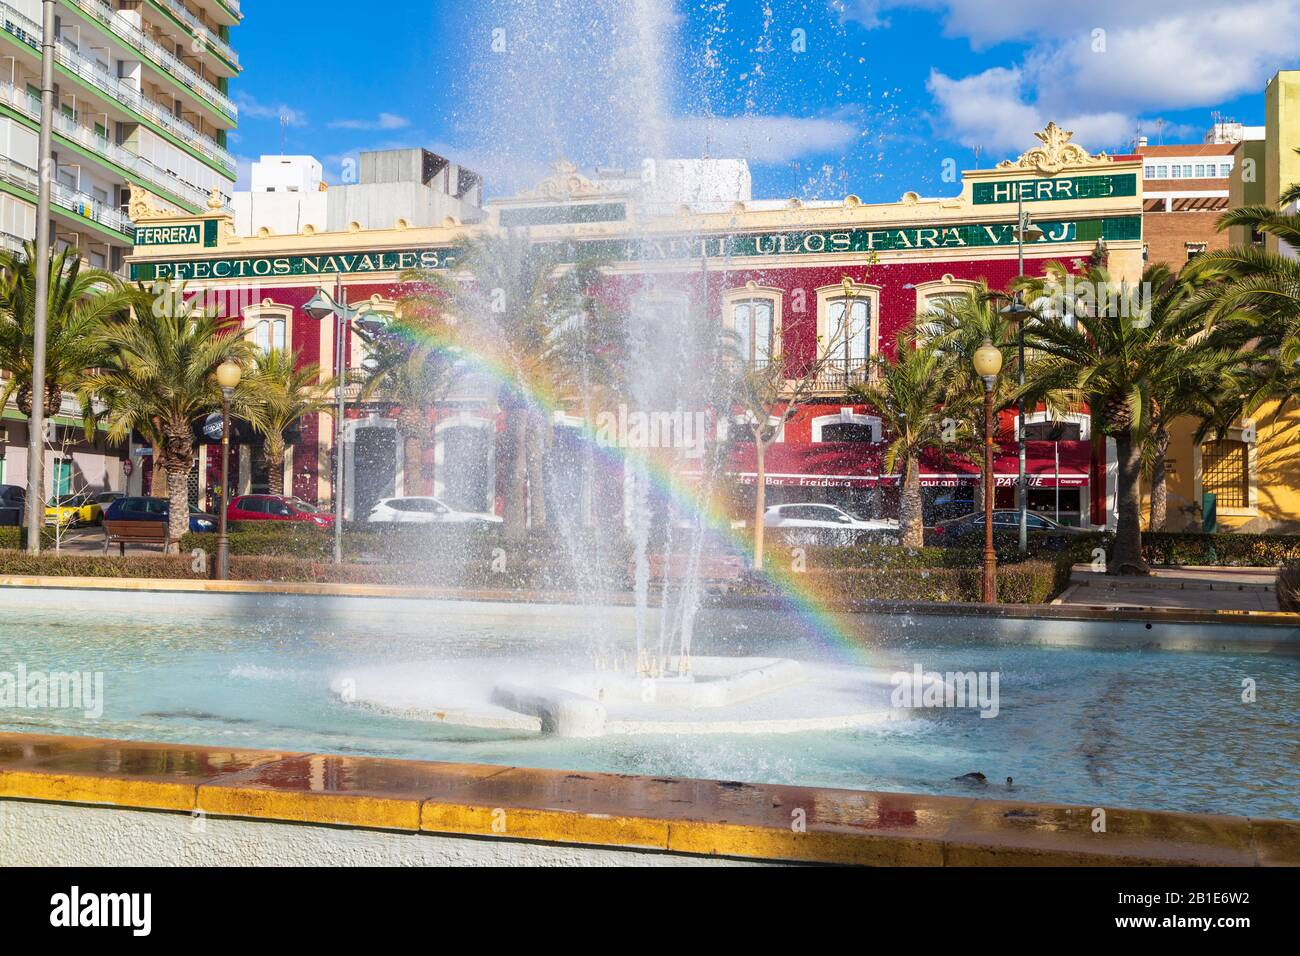 Water fountain with rainbow, casa ferrera, Parque de Nicolás Salmerón, Almeria, Spain Stock Photo